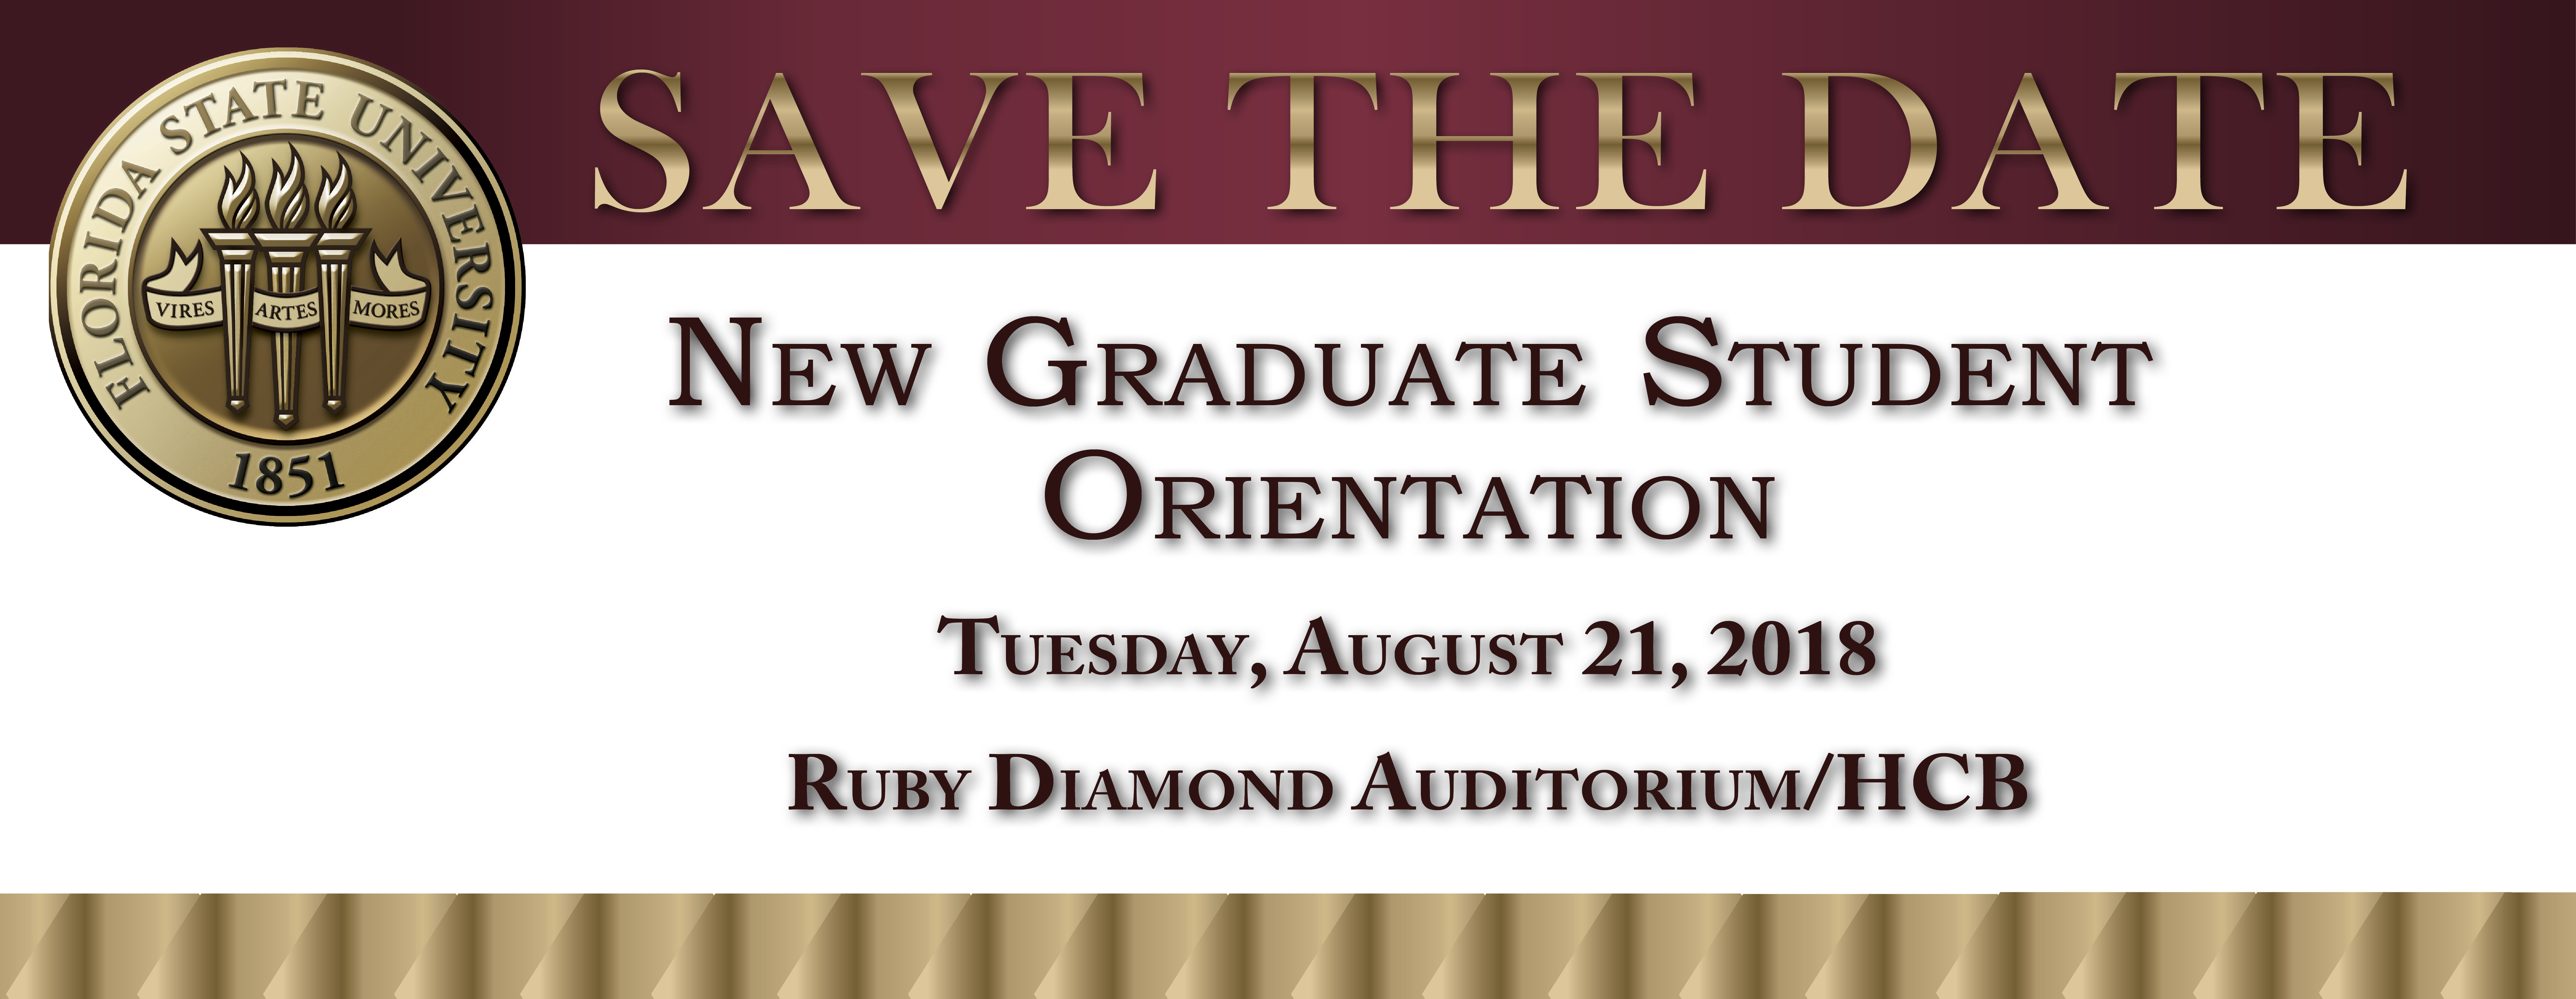 Banner for New Gradauate Student Orientation